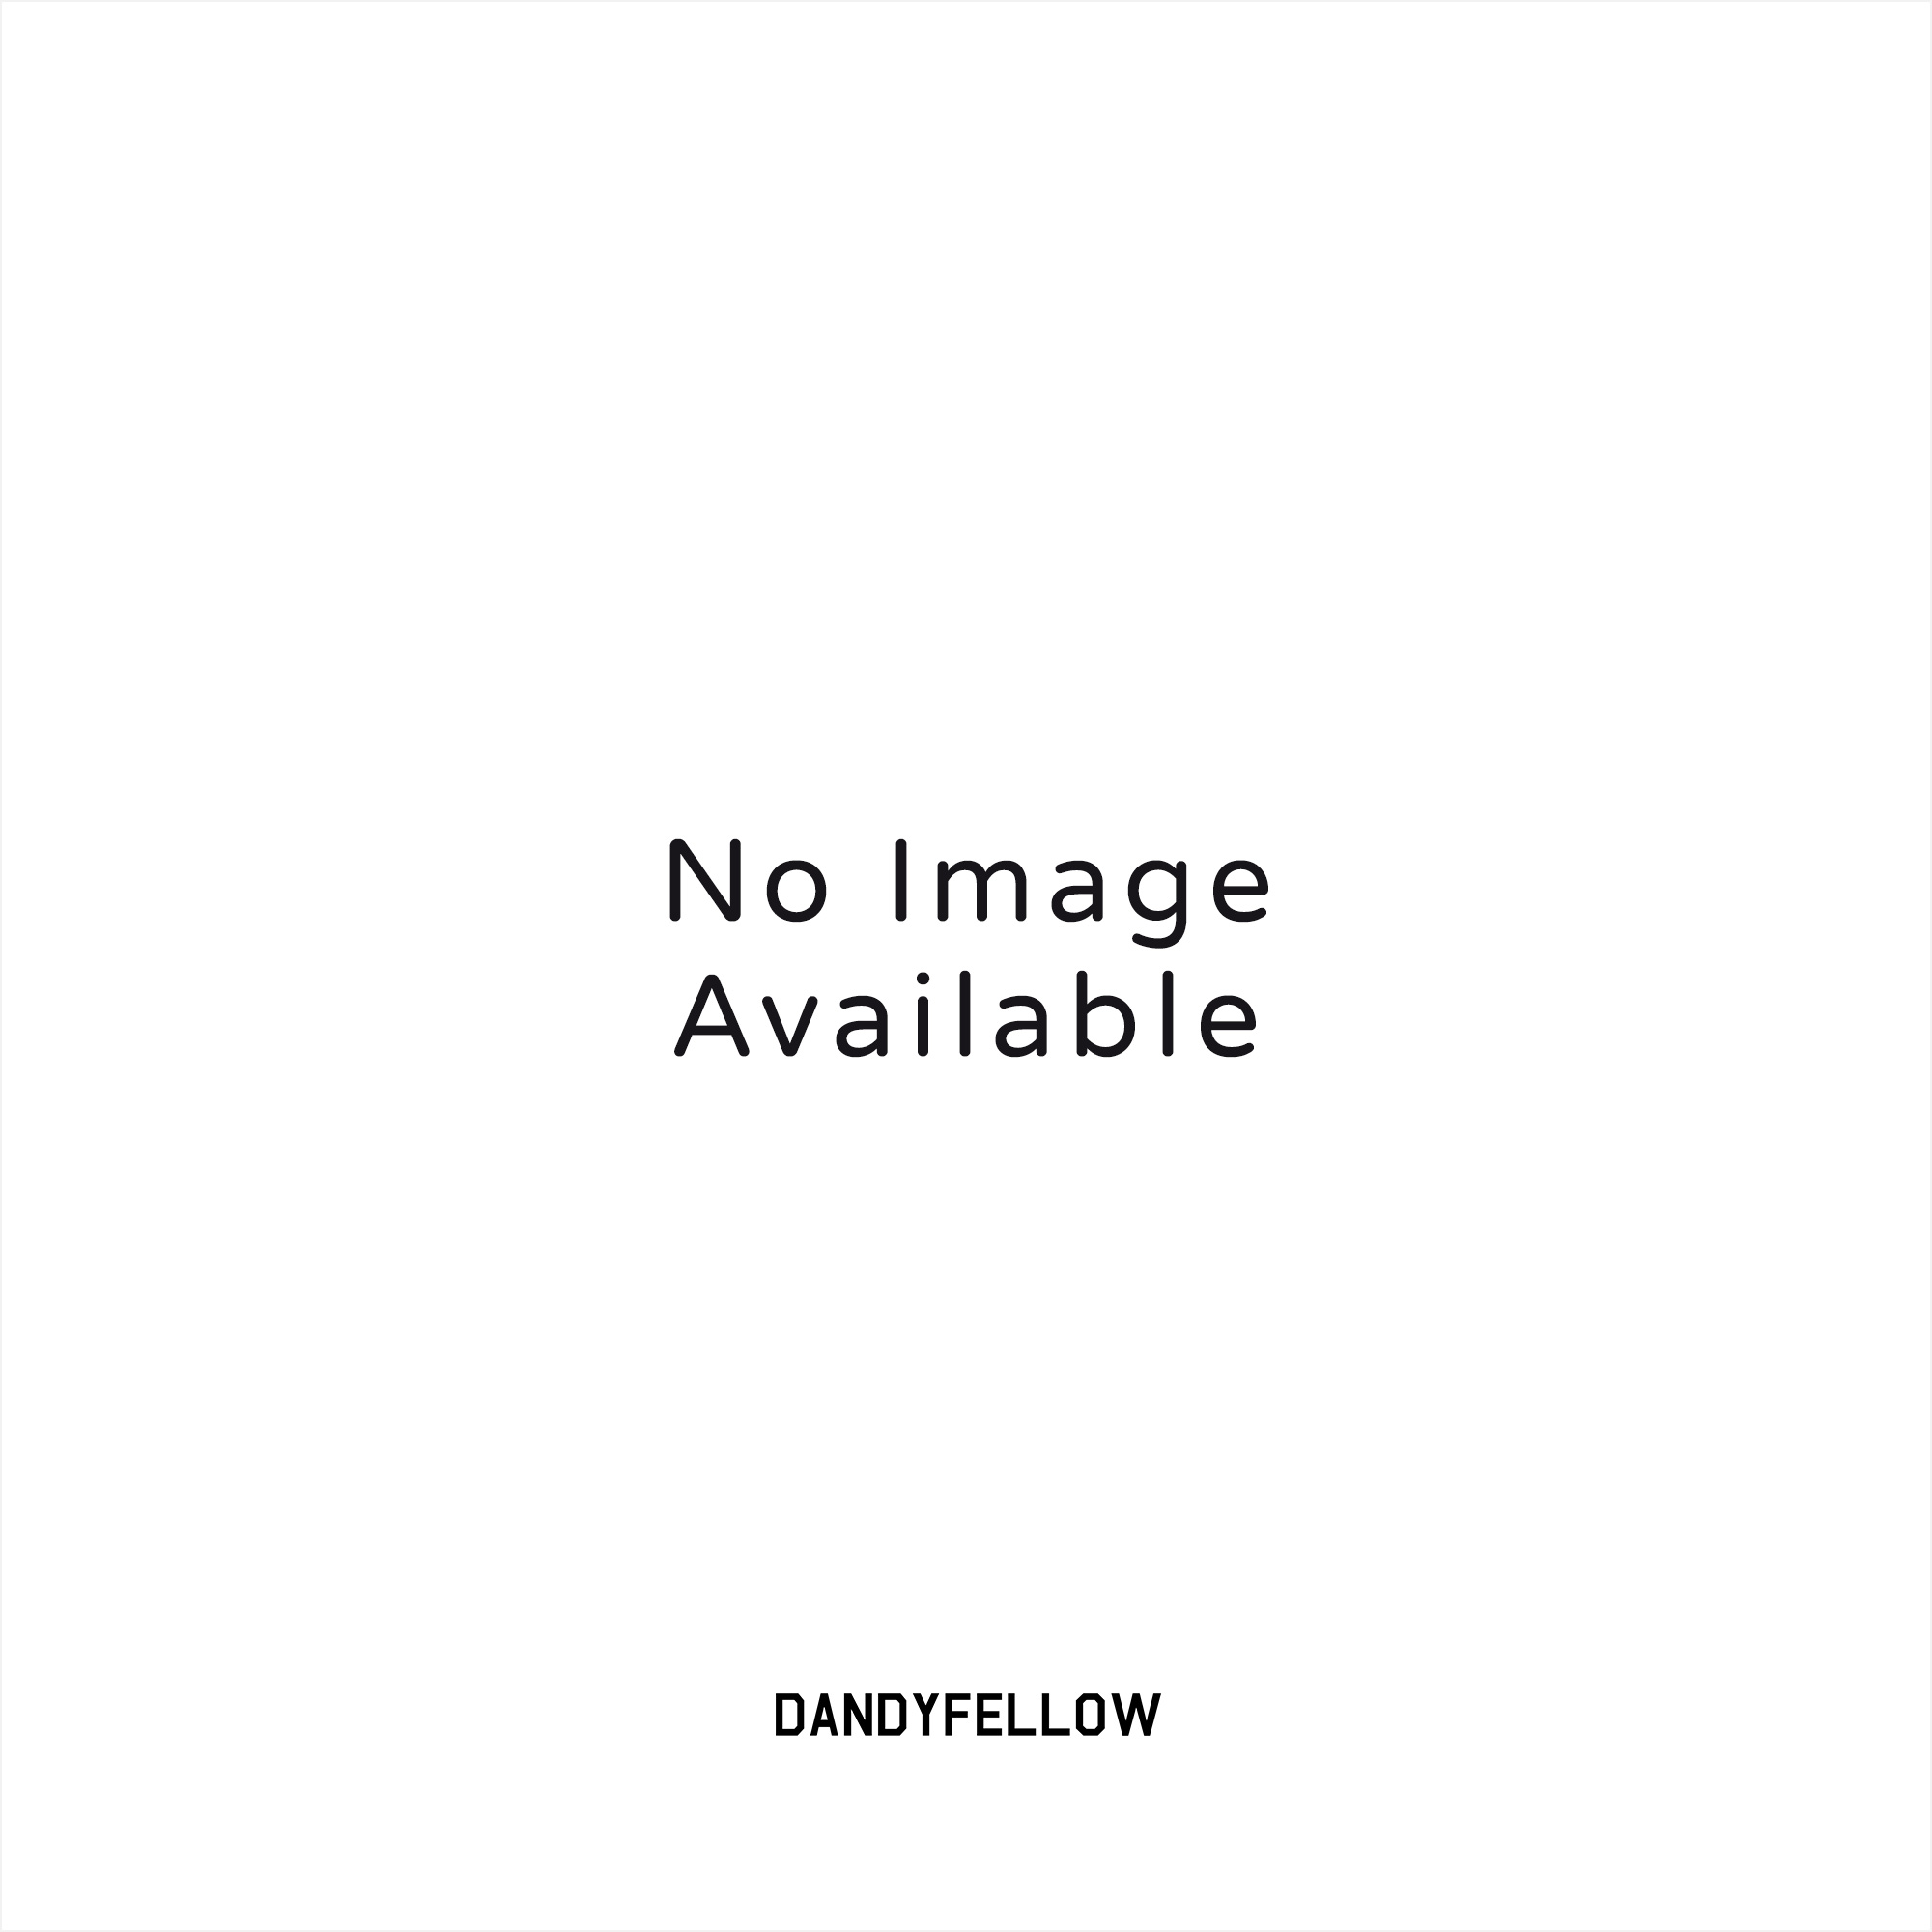 PW622 Handmade Tailored Comfort Denim Jeans